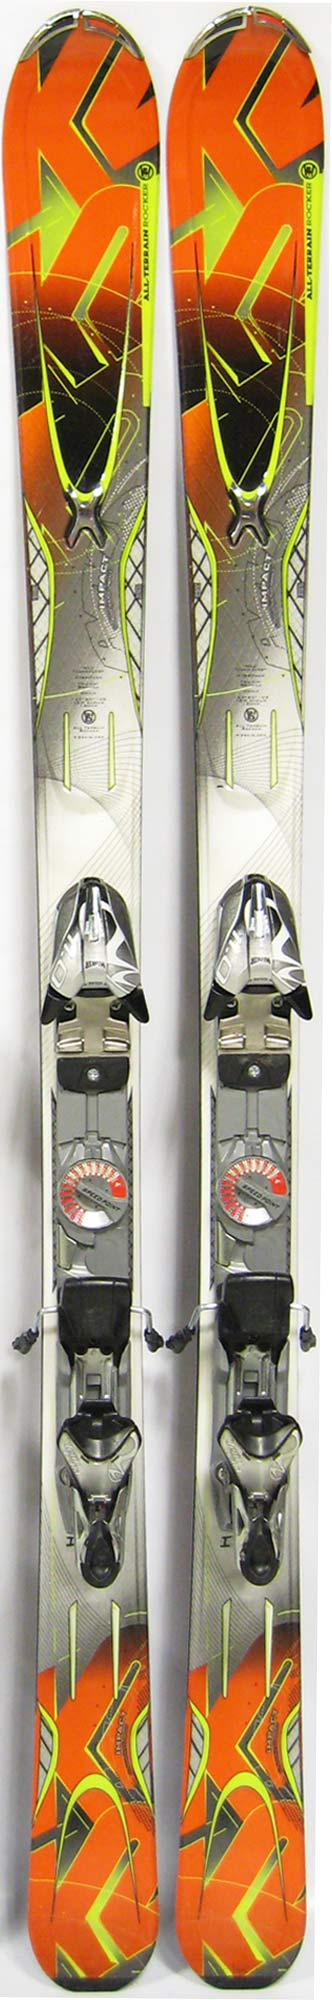 Topsheets of 2012 K2 Amp Impact Skis For Sale